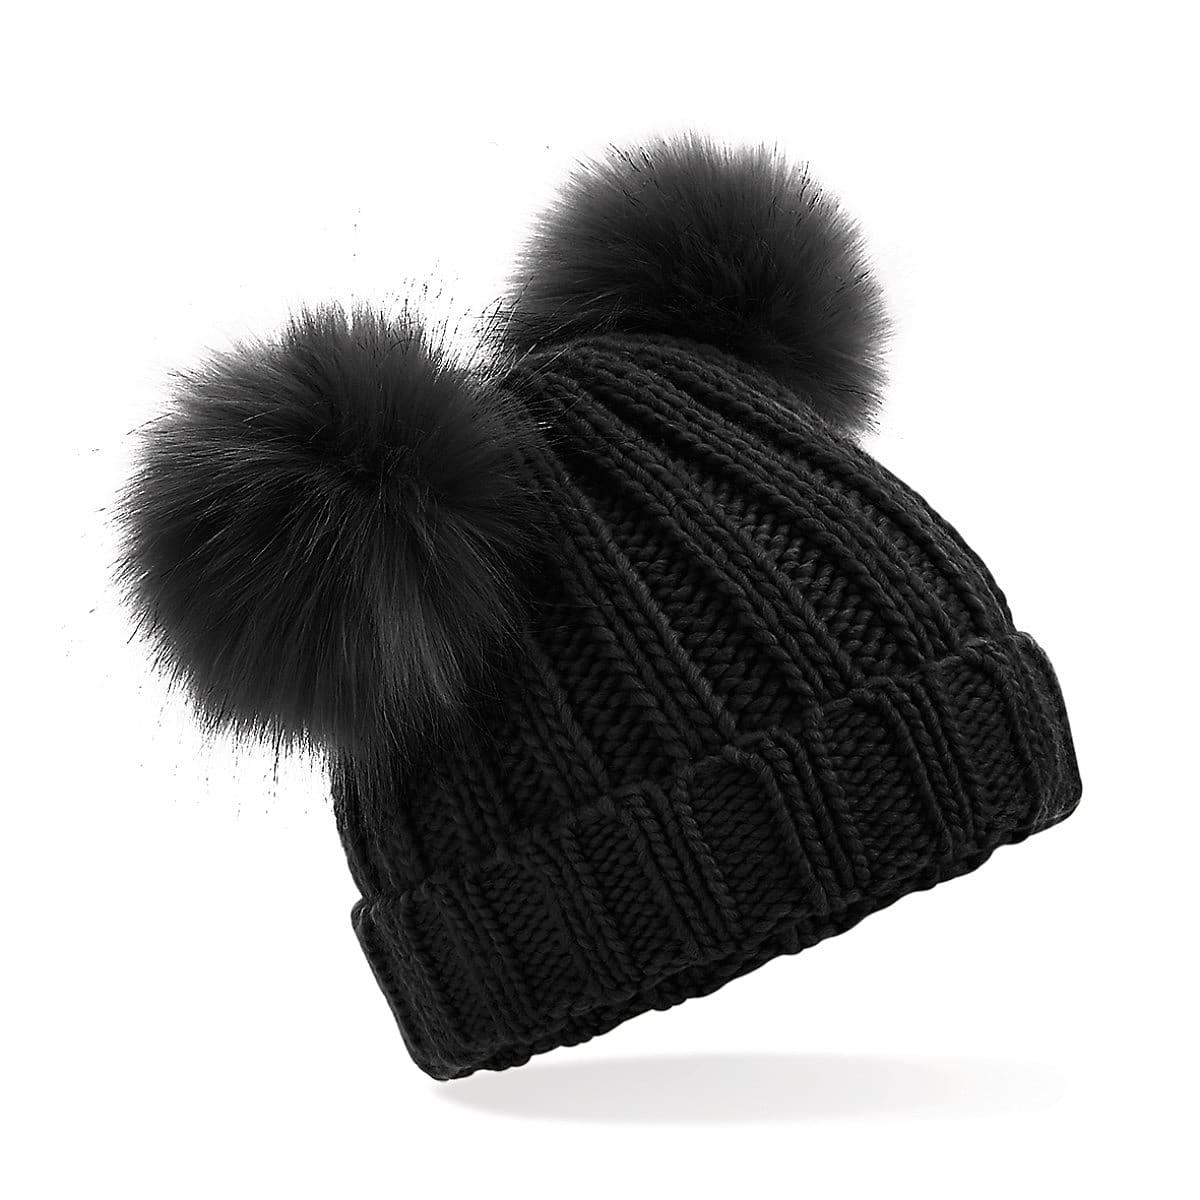 Beechfield Infant Double Pom Pom Beanie Hat in Black (Product Code: B414A)